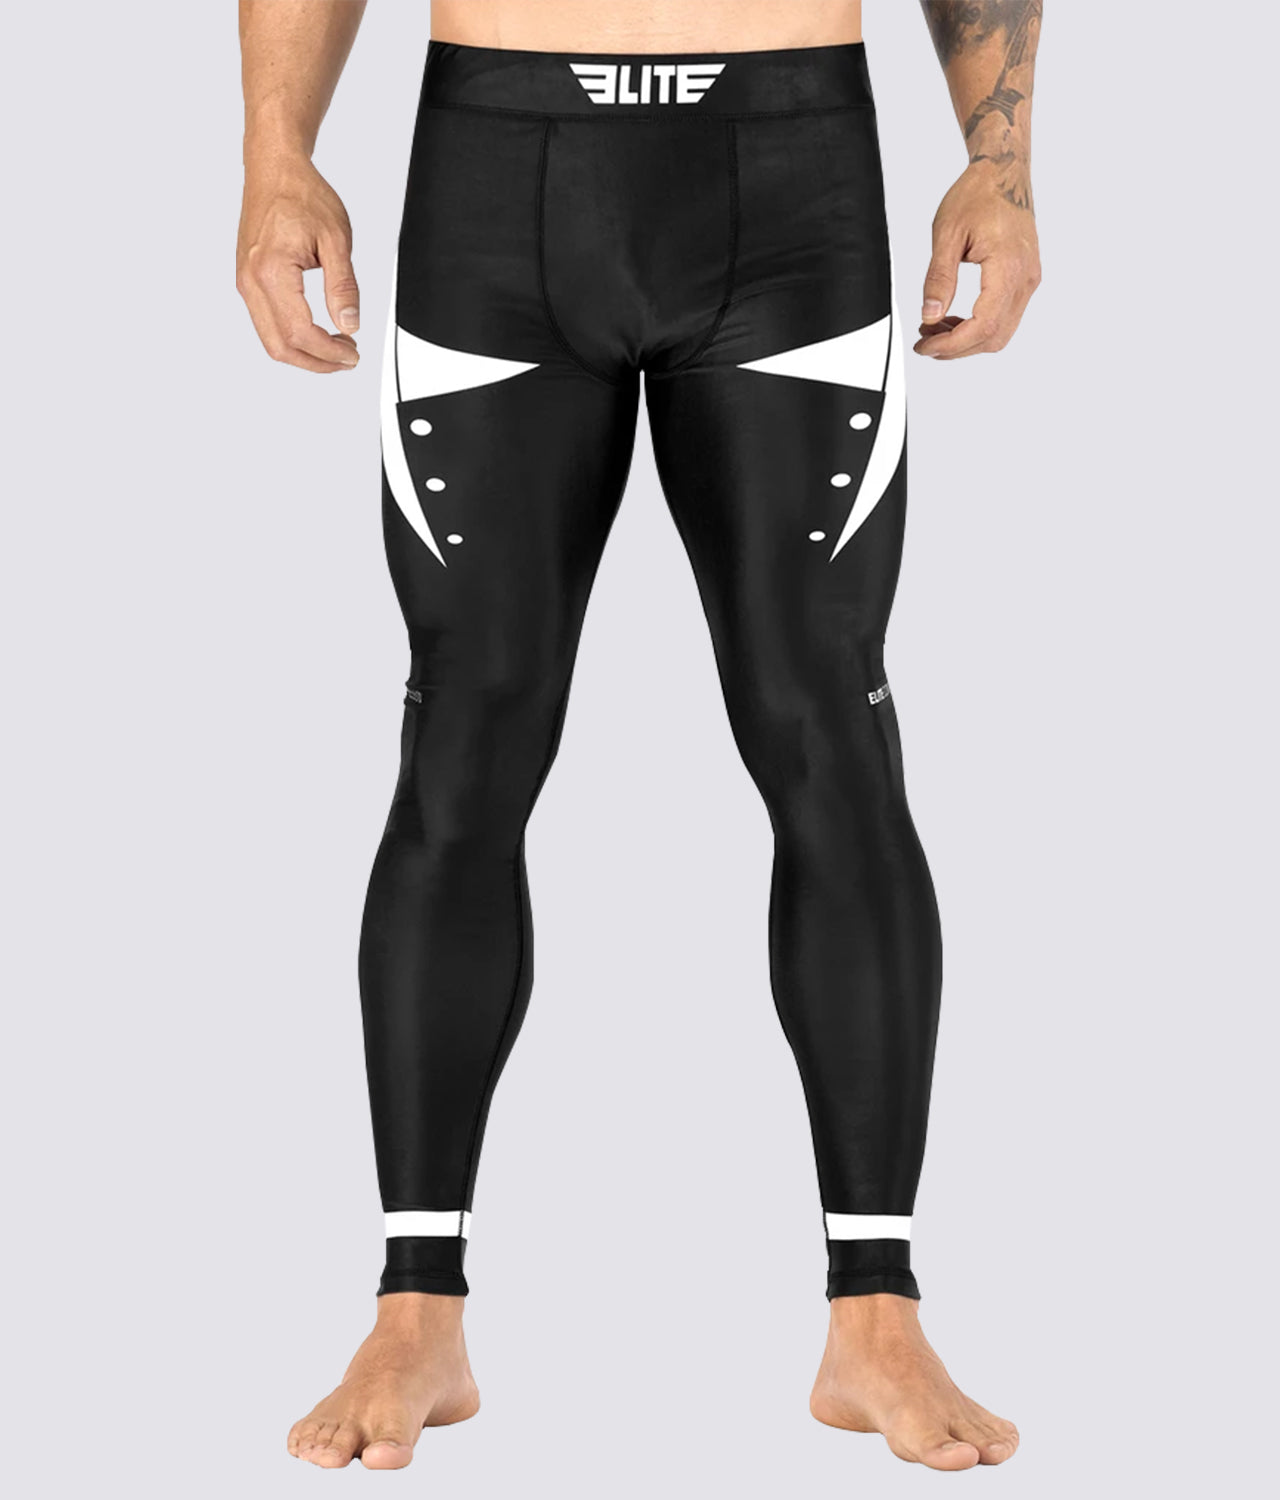 Elite Sports Star Series Lightweight Black/White Advance Compression Muay Thai Spat Pants